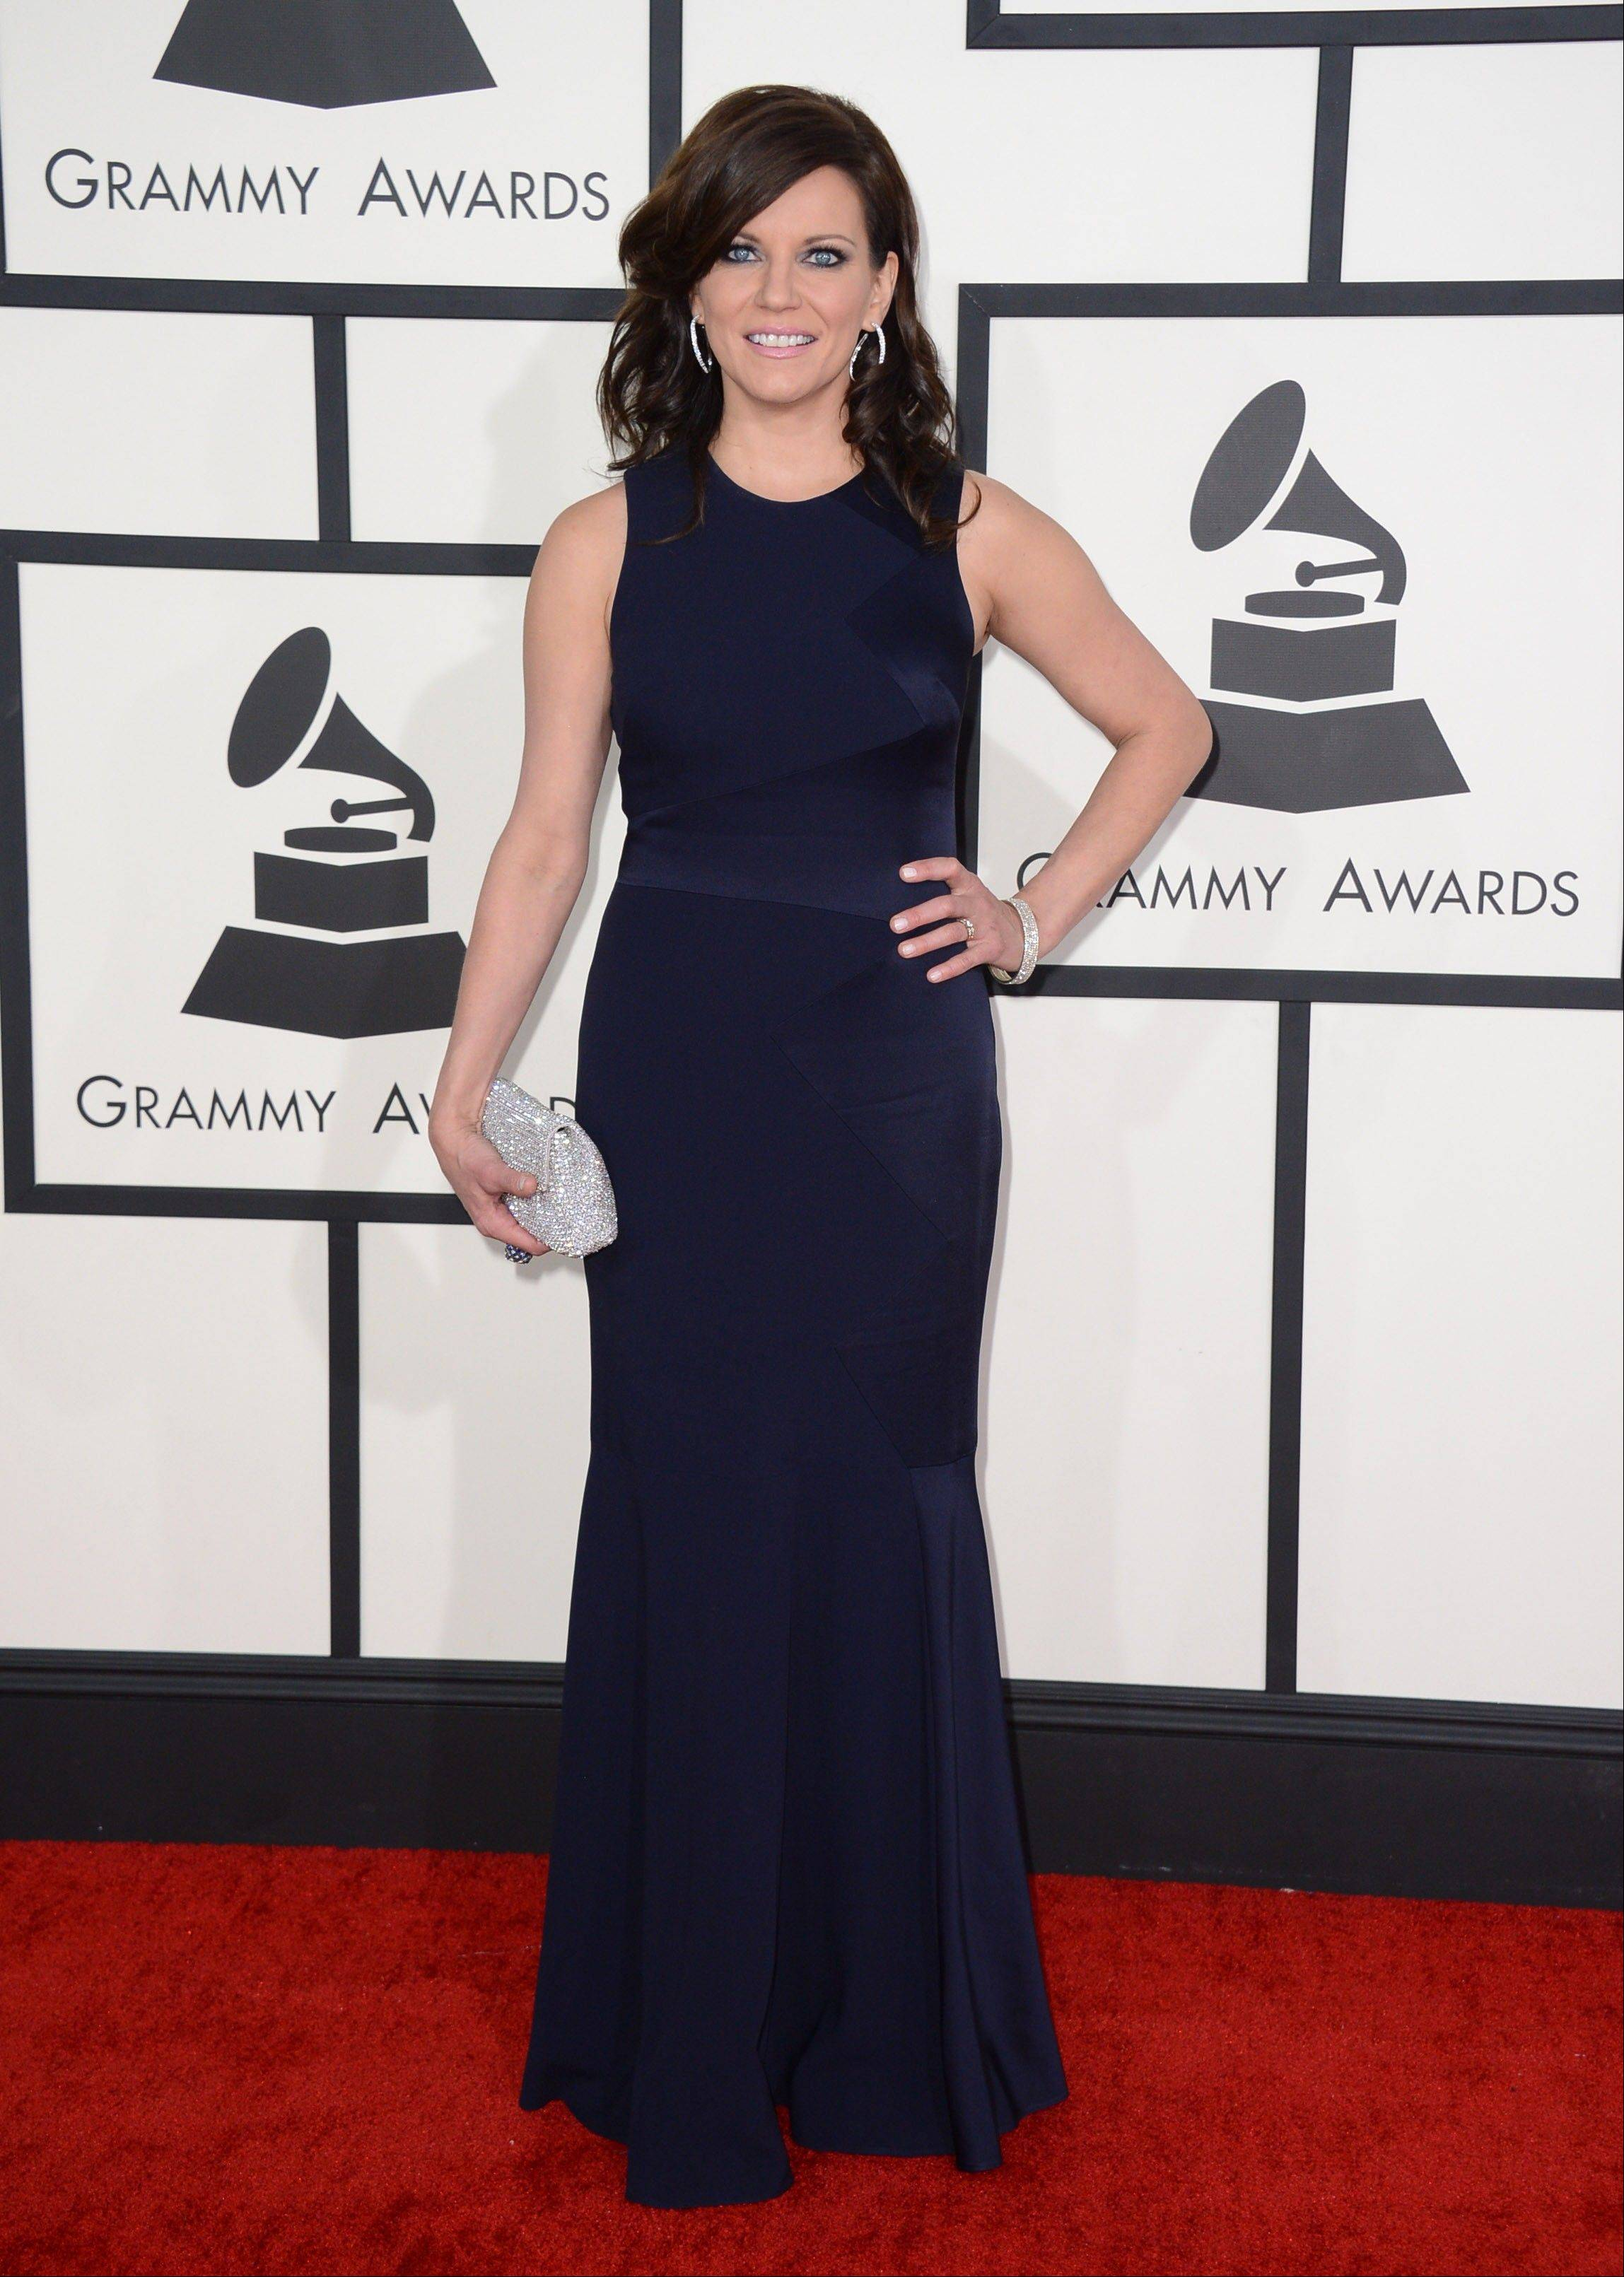 Country singer Martina McBride arrives at the 56th annual Grammy Awards at Staples Center on Sunday in Los Angeles.